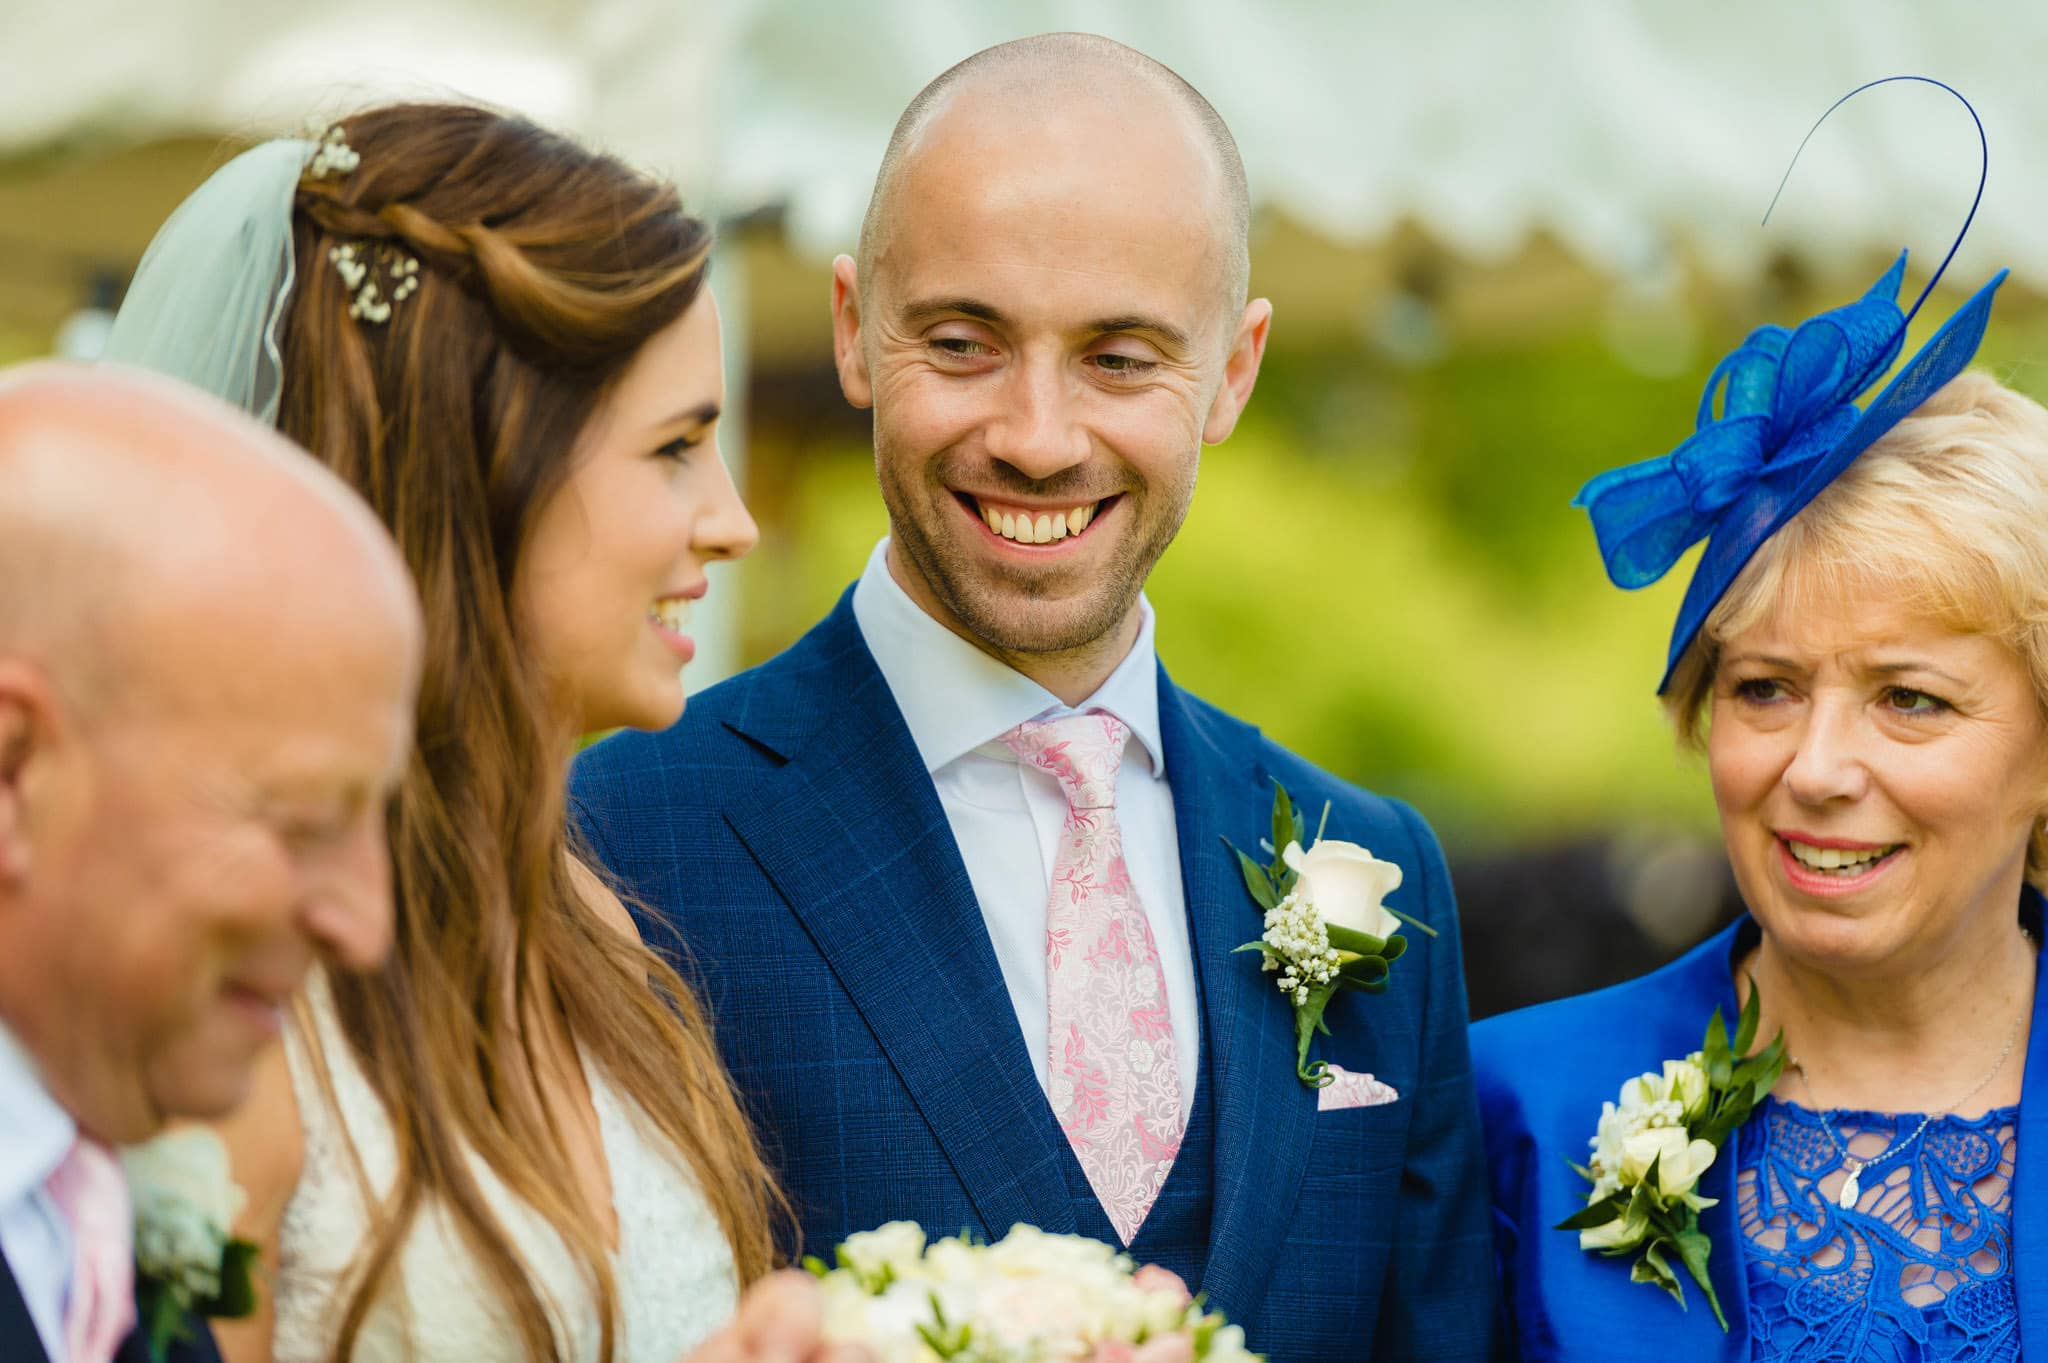 Wedding at Redhouse Barn in Stoke Prior, Worcestershire 104